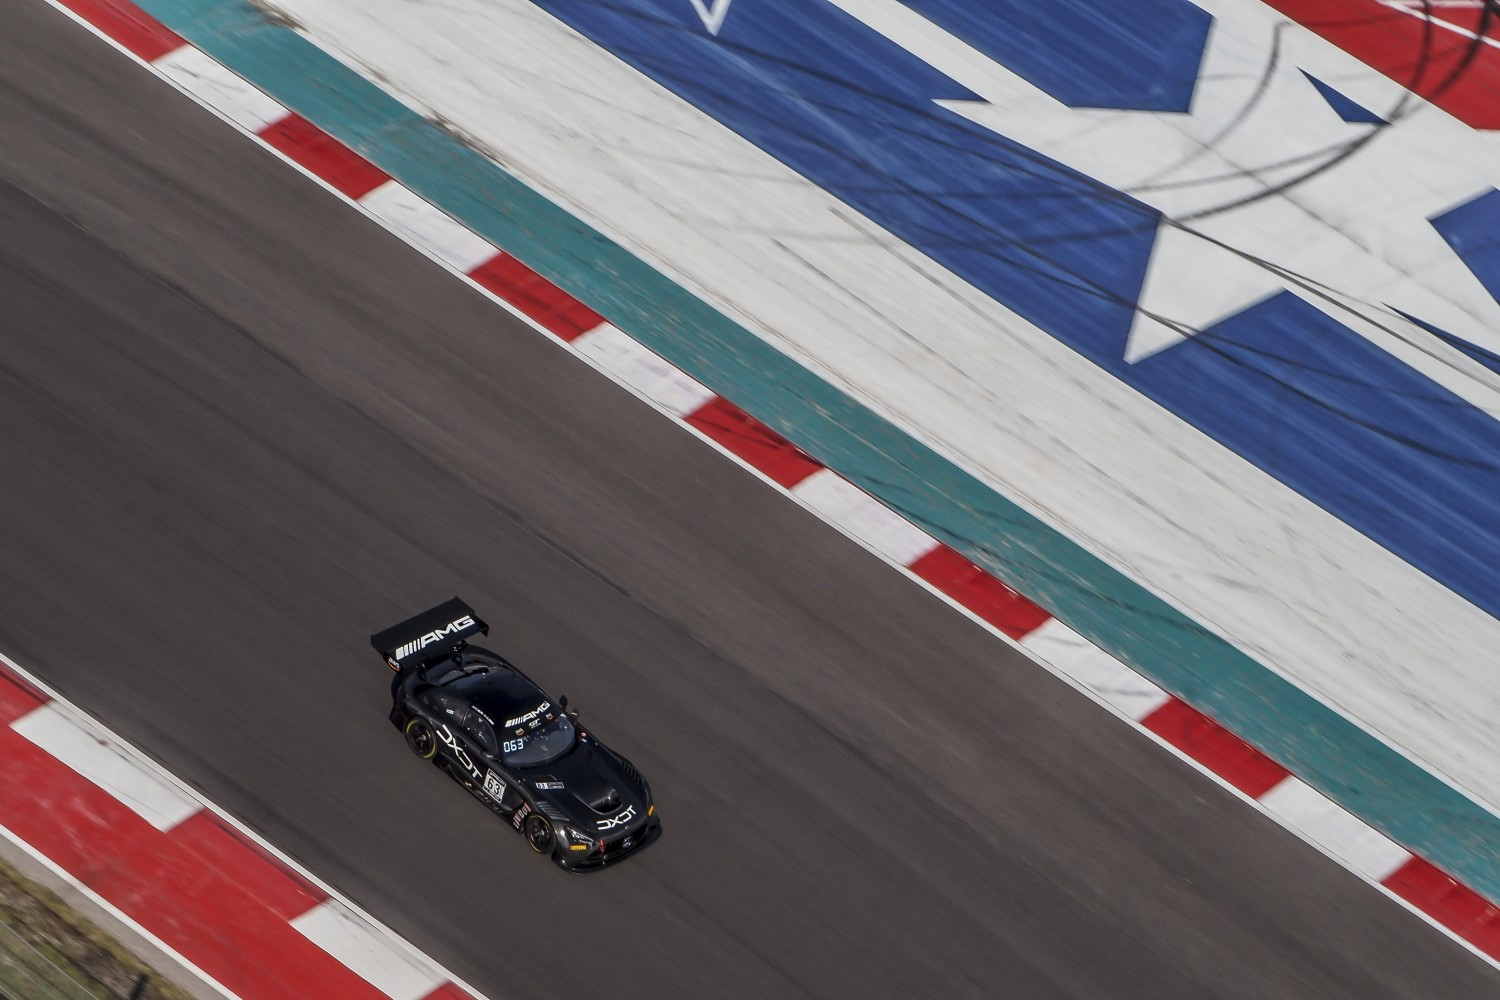 #63 Mercedes-AMG GT3 of David Askew and Ryan Dalziel, DXDT Racing, GT3 Pro-Am, SRO America, Circuit of the Americas, Austin TX, September 2020.